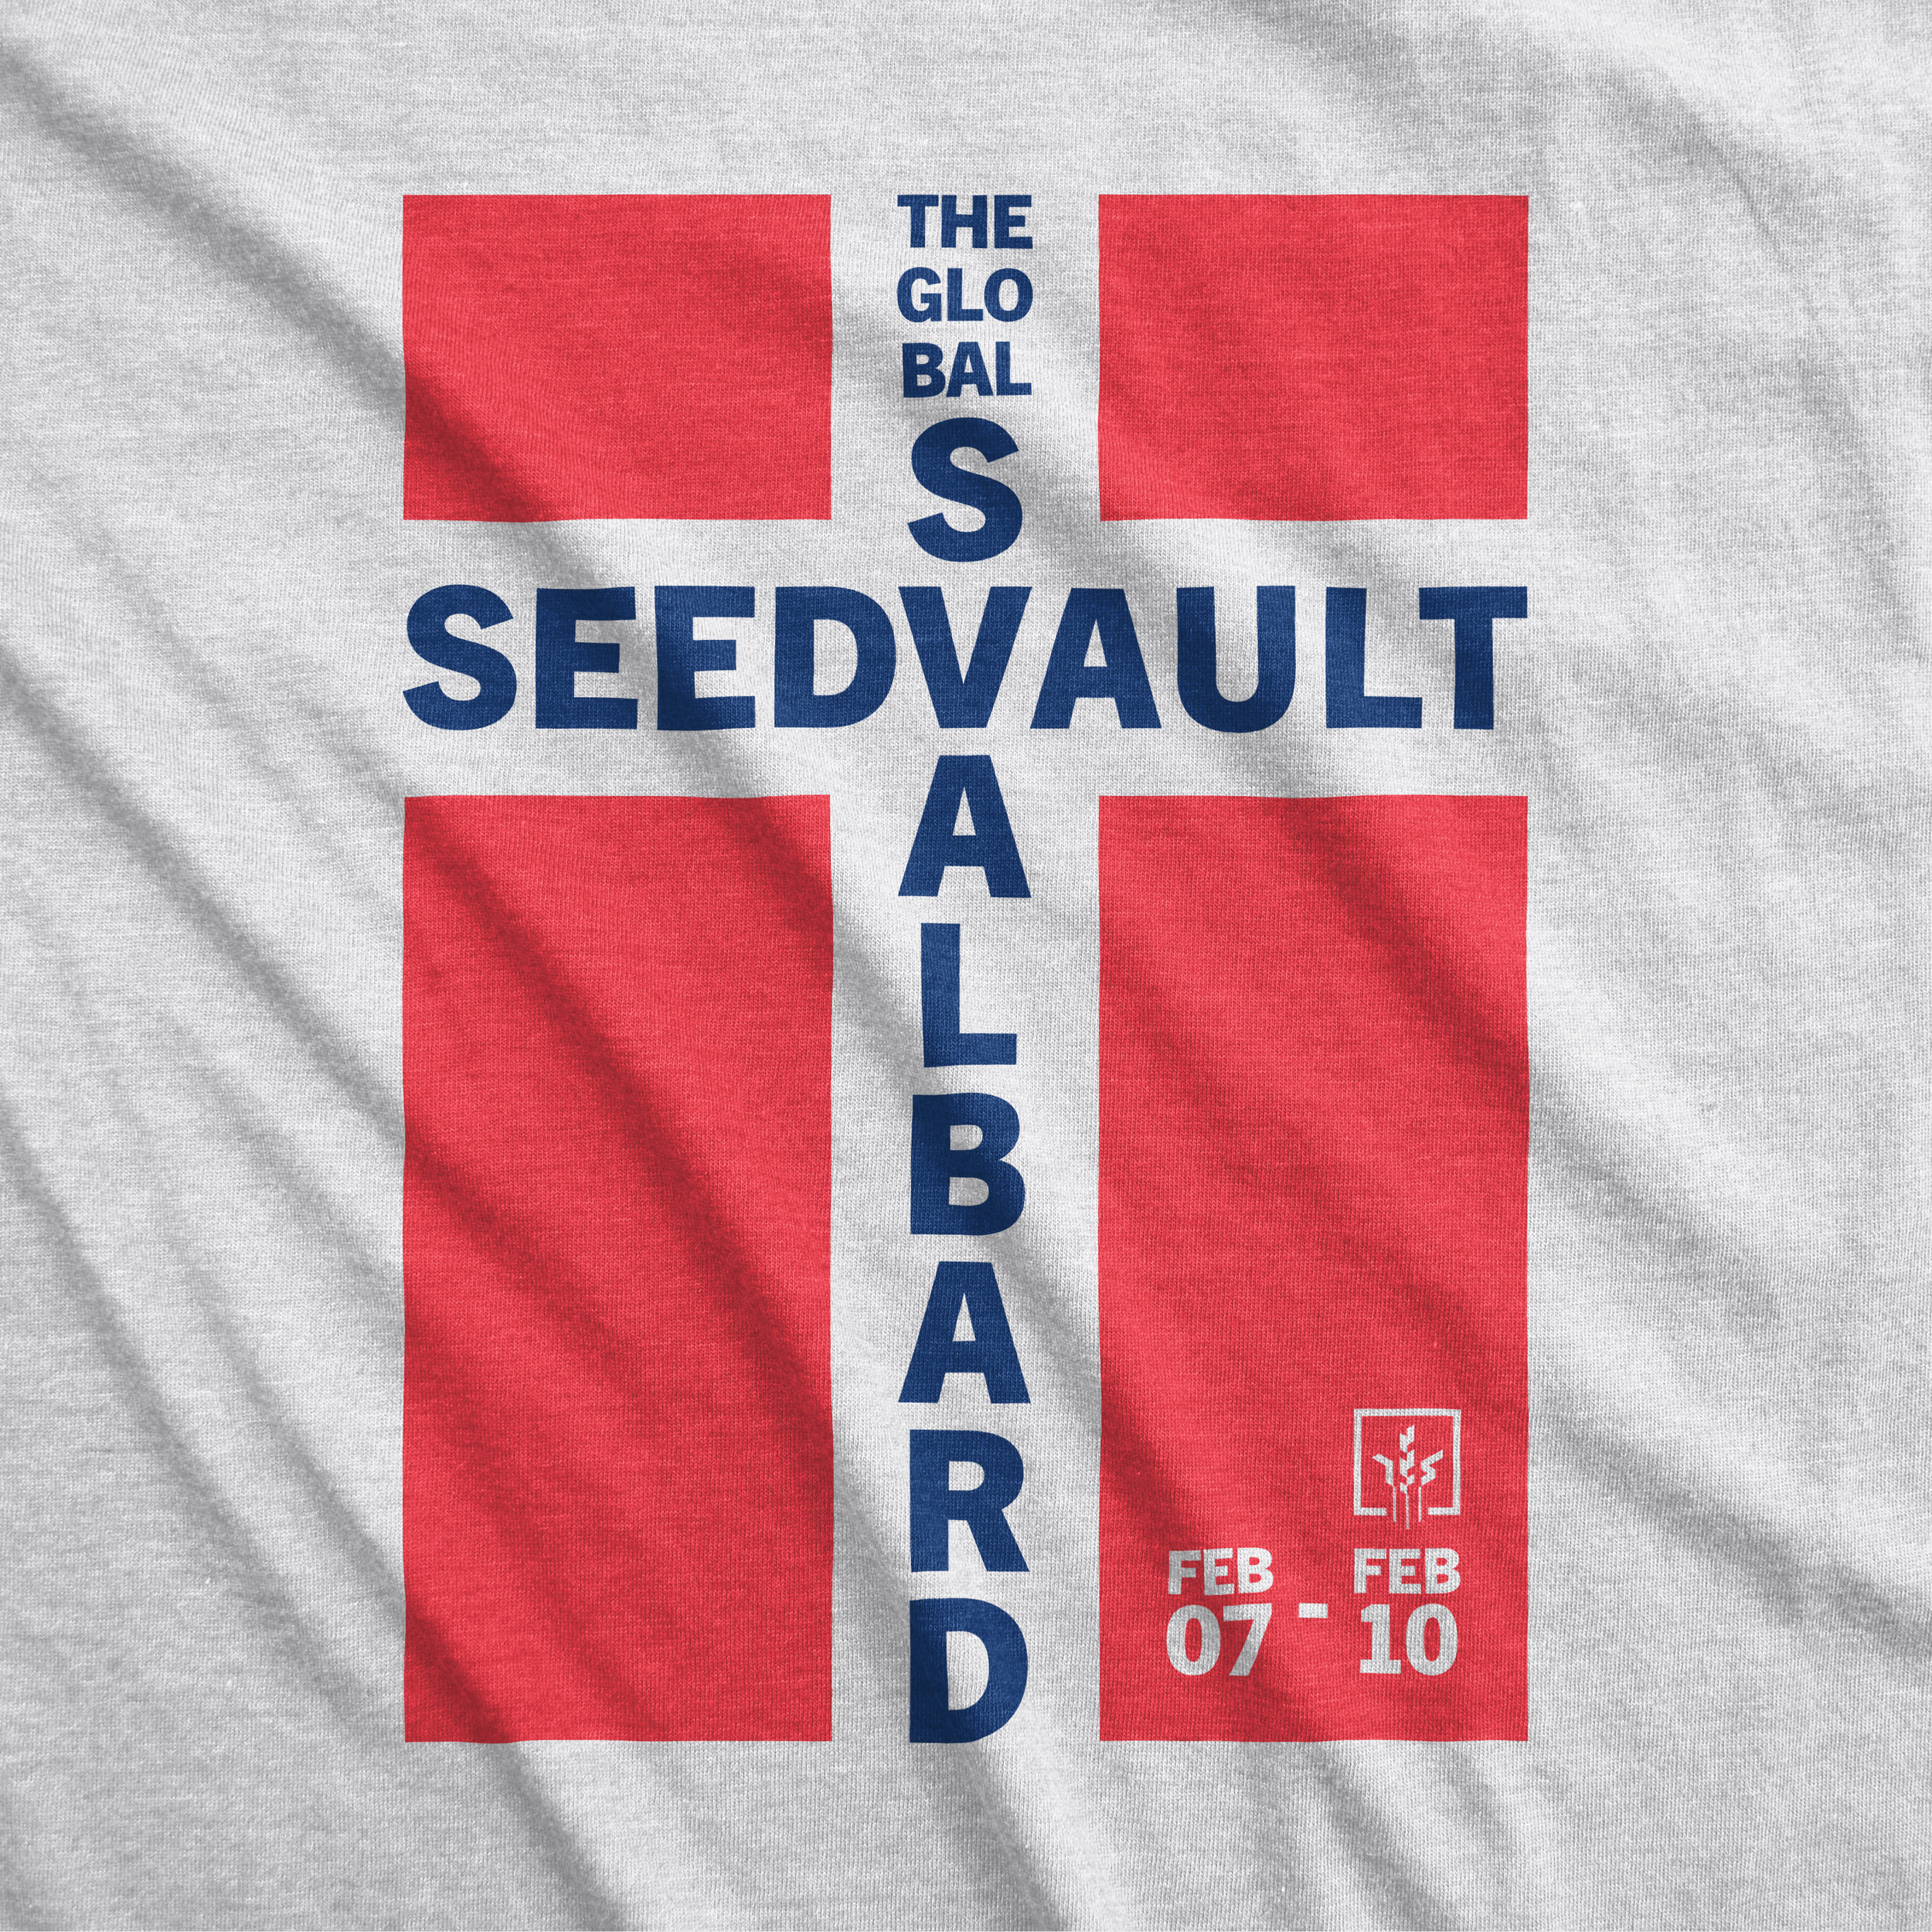 Martha Stewart - Prizeo Charity Campaign Promo Tee ShirtTo Support The Svalbard Global Seed Vault